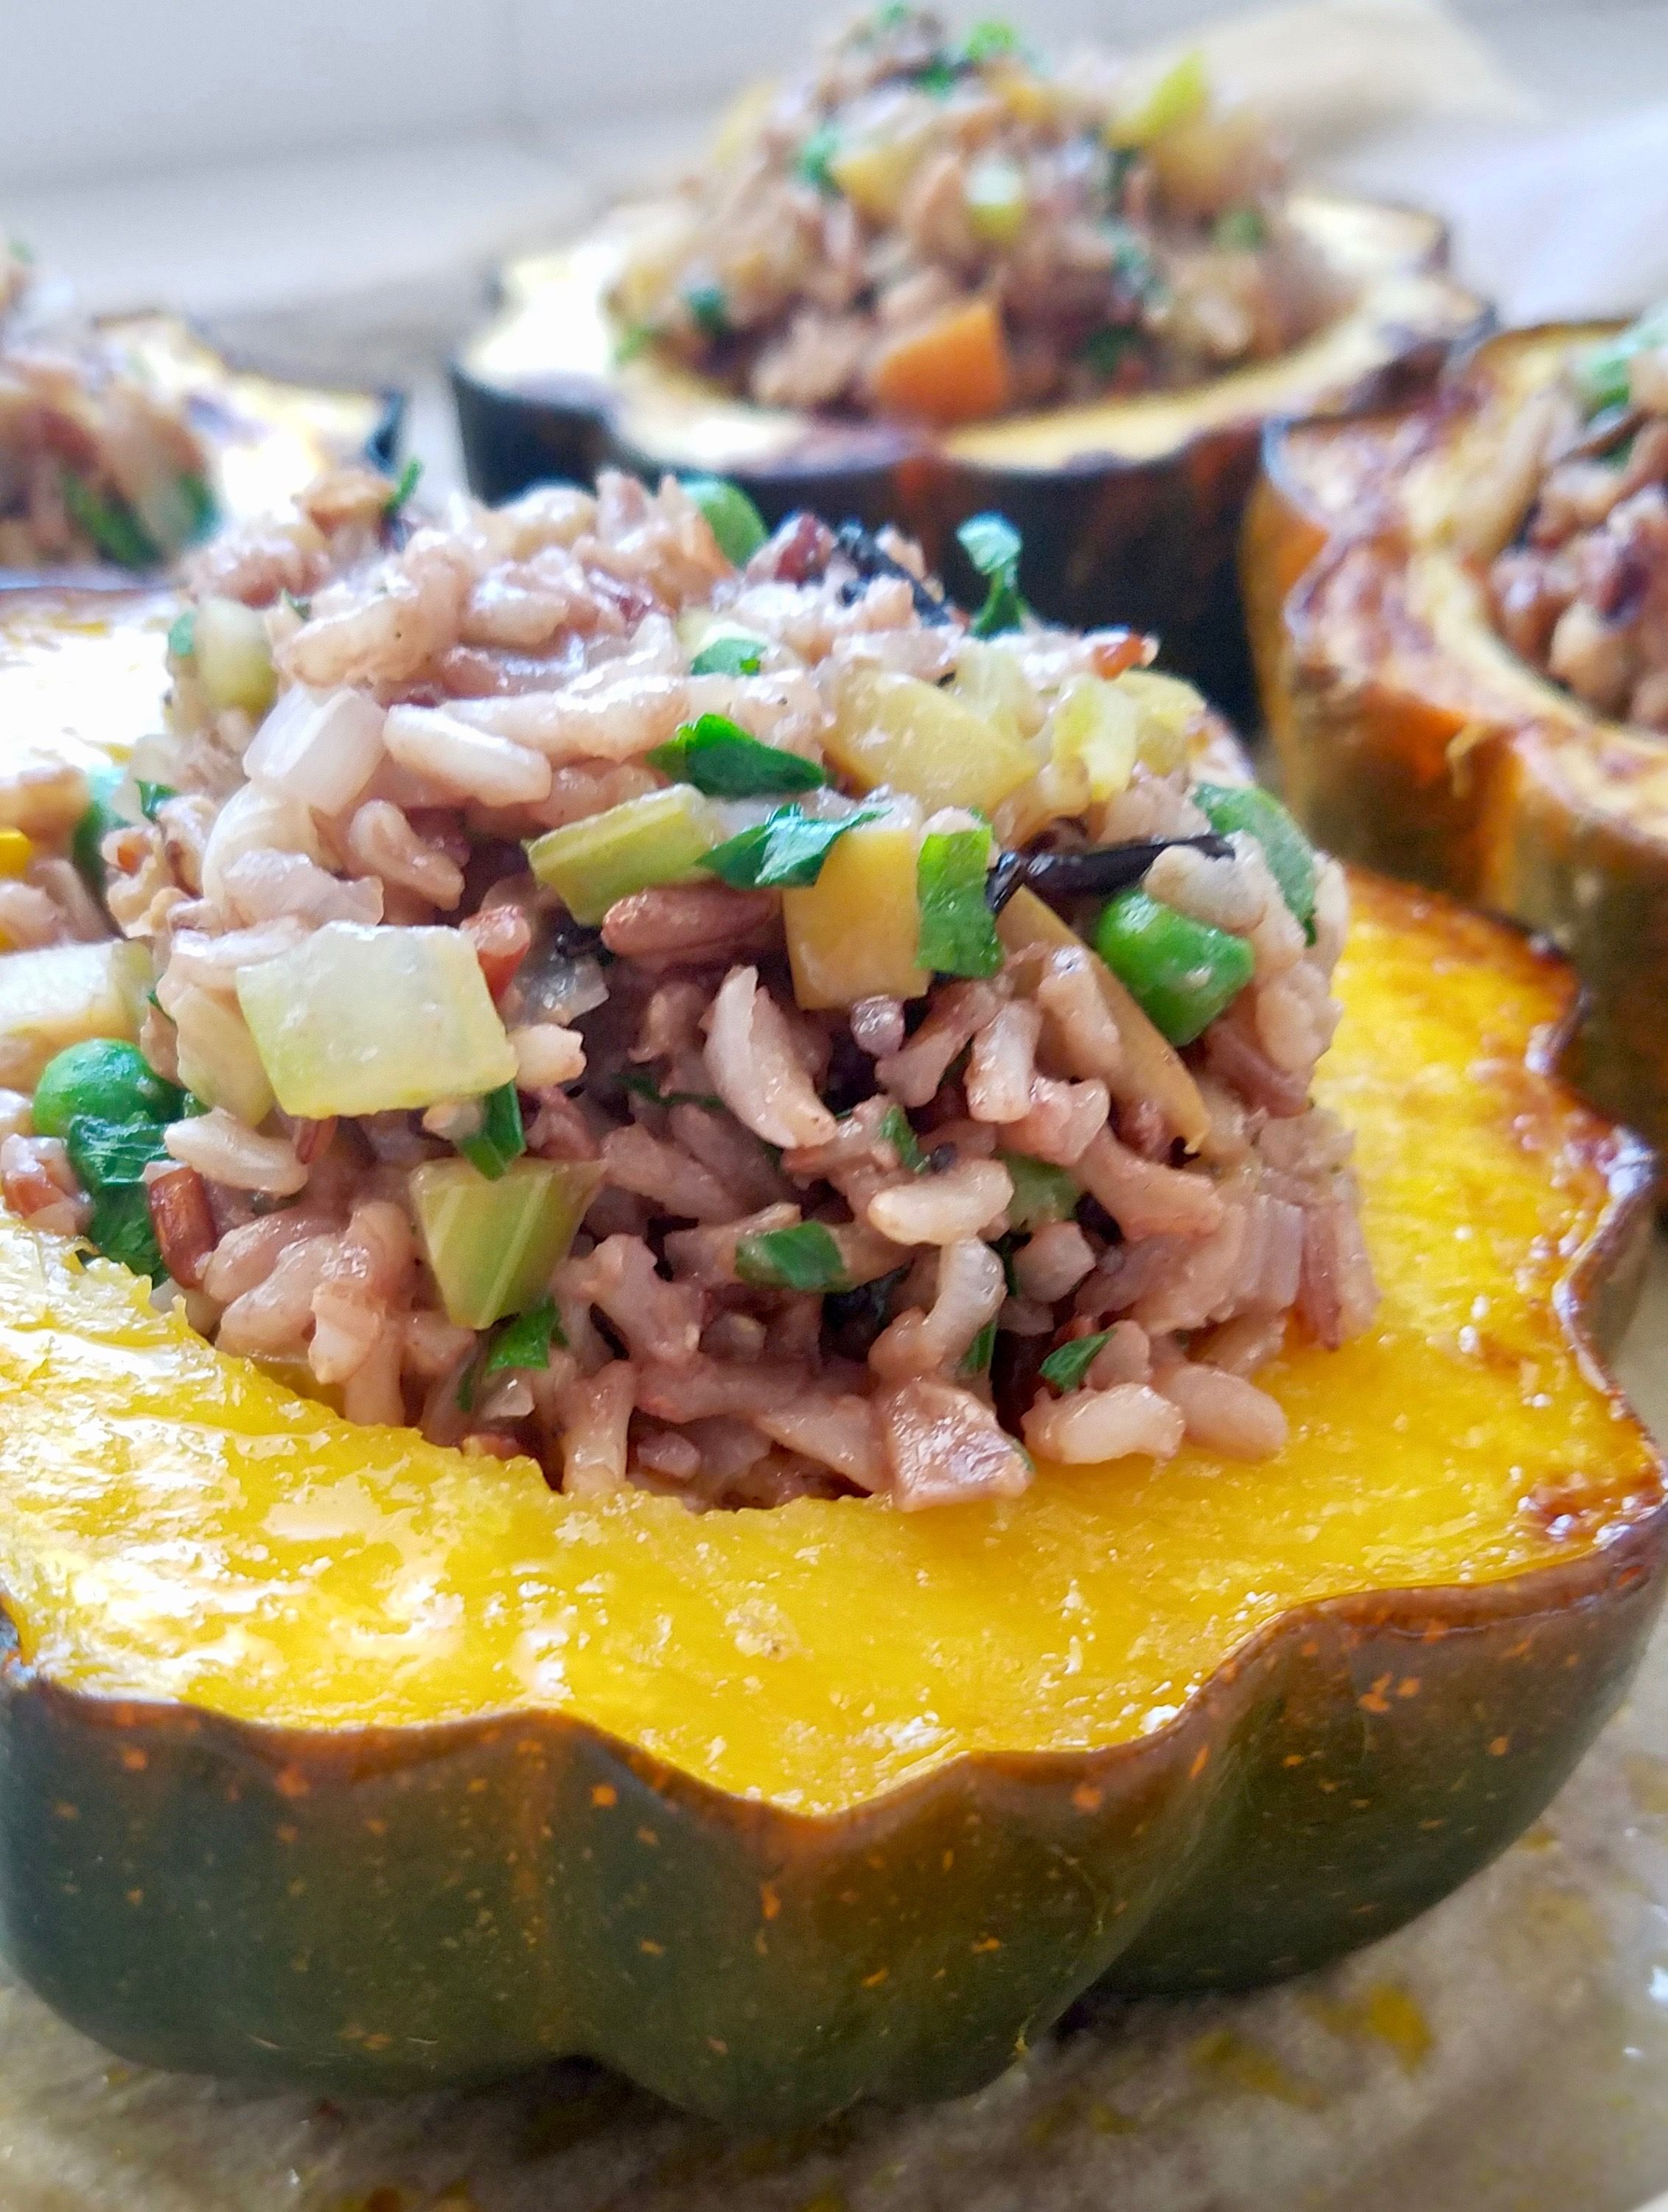 Roasted Acorn Squash Stuffed With Wild Rice Apples And Walnuts